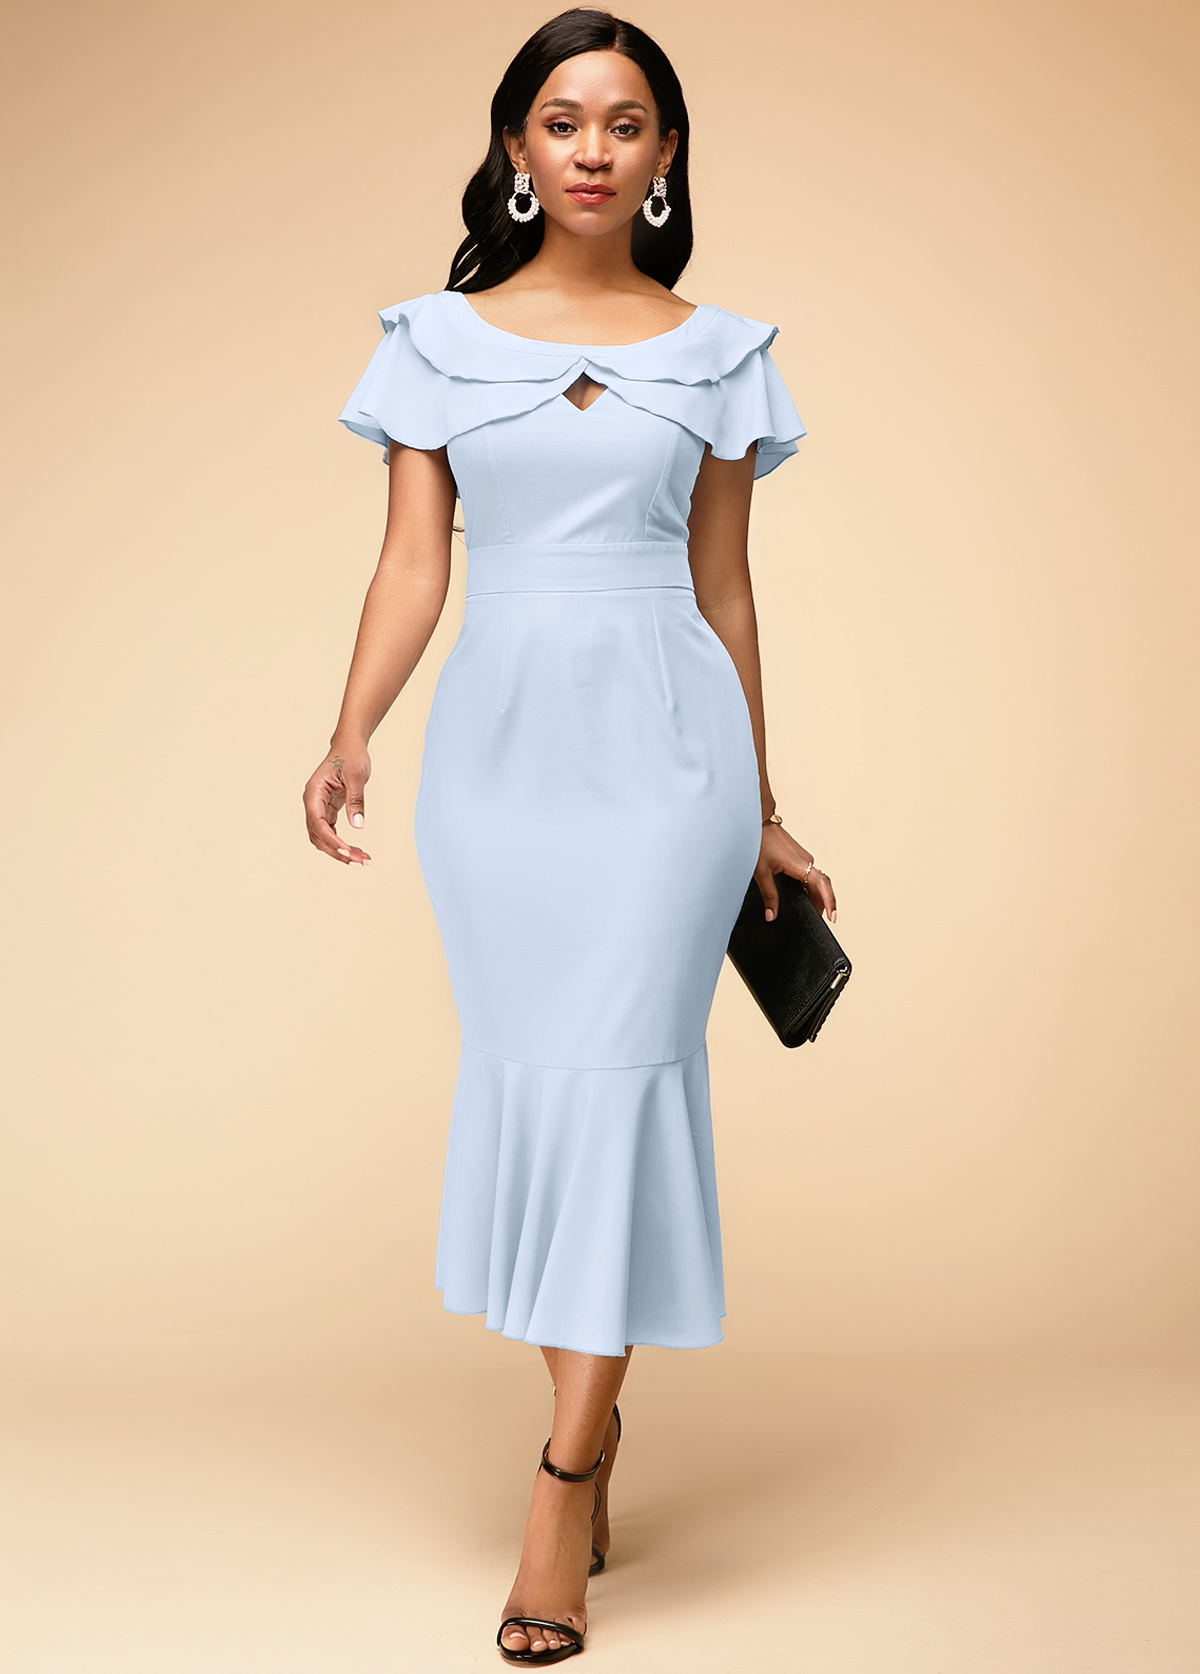 Keyhole Neckline Ruffle Hem Light Blue Dress